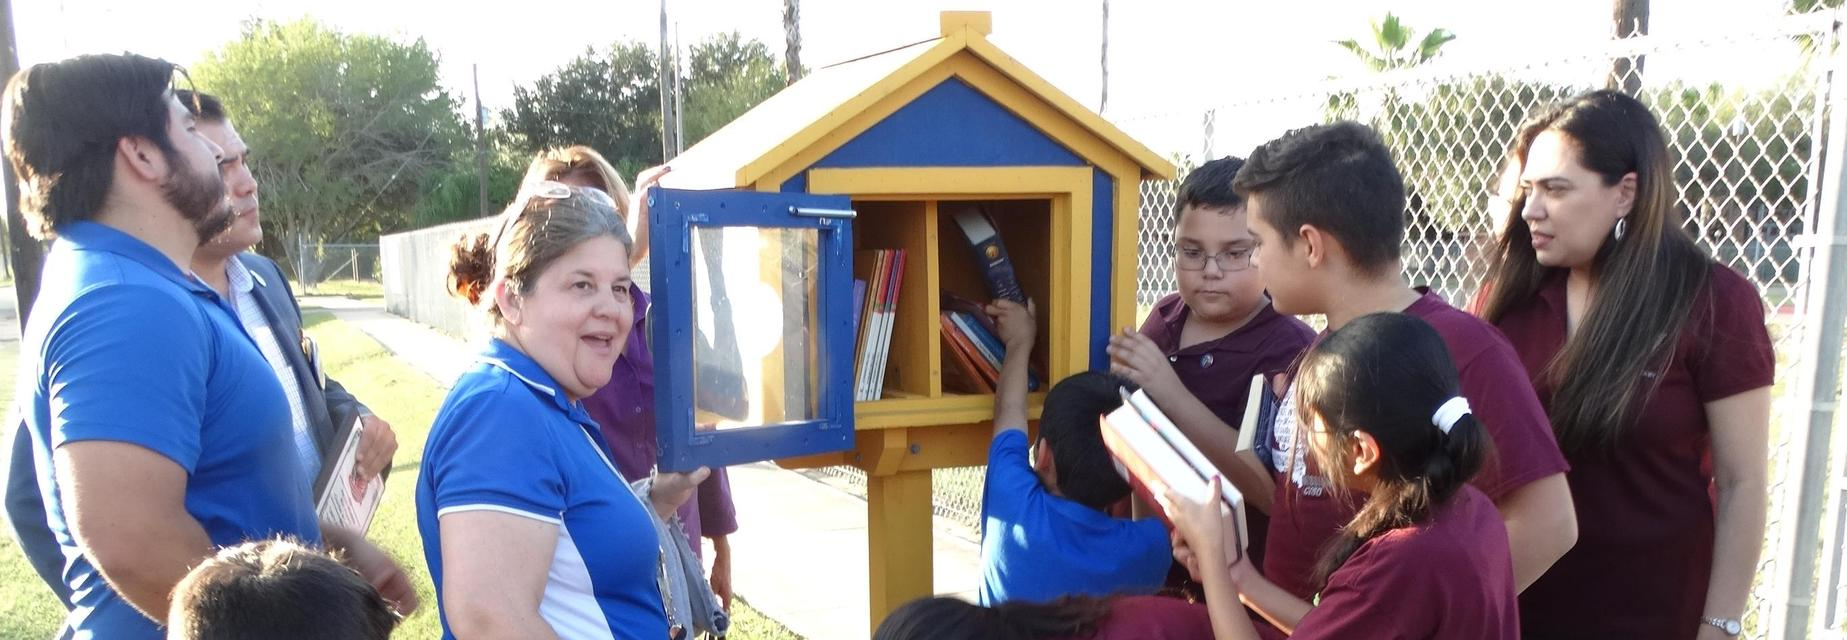 Students and staff placing books in the new Little Library